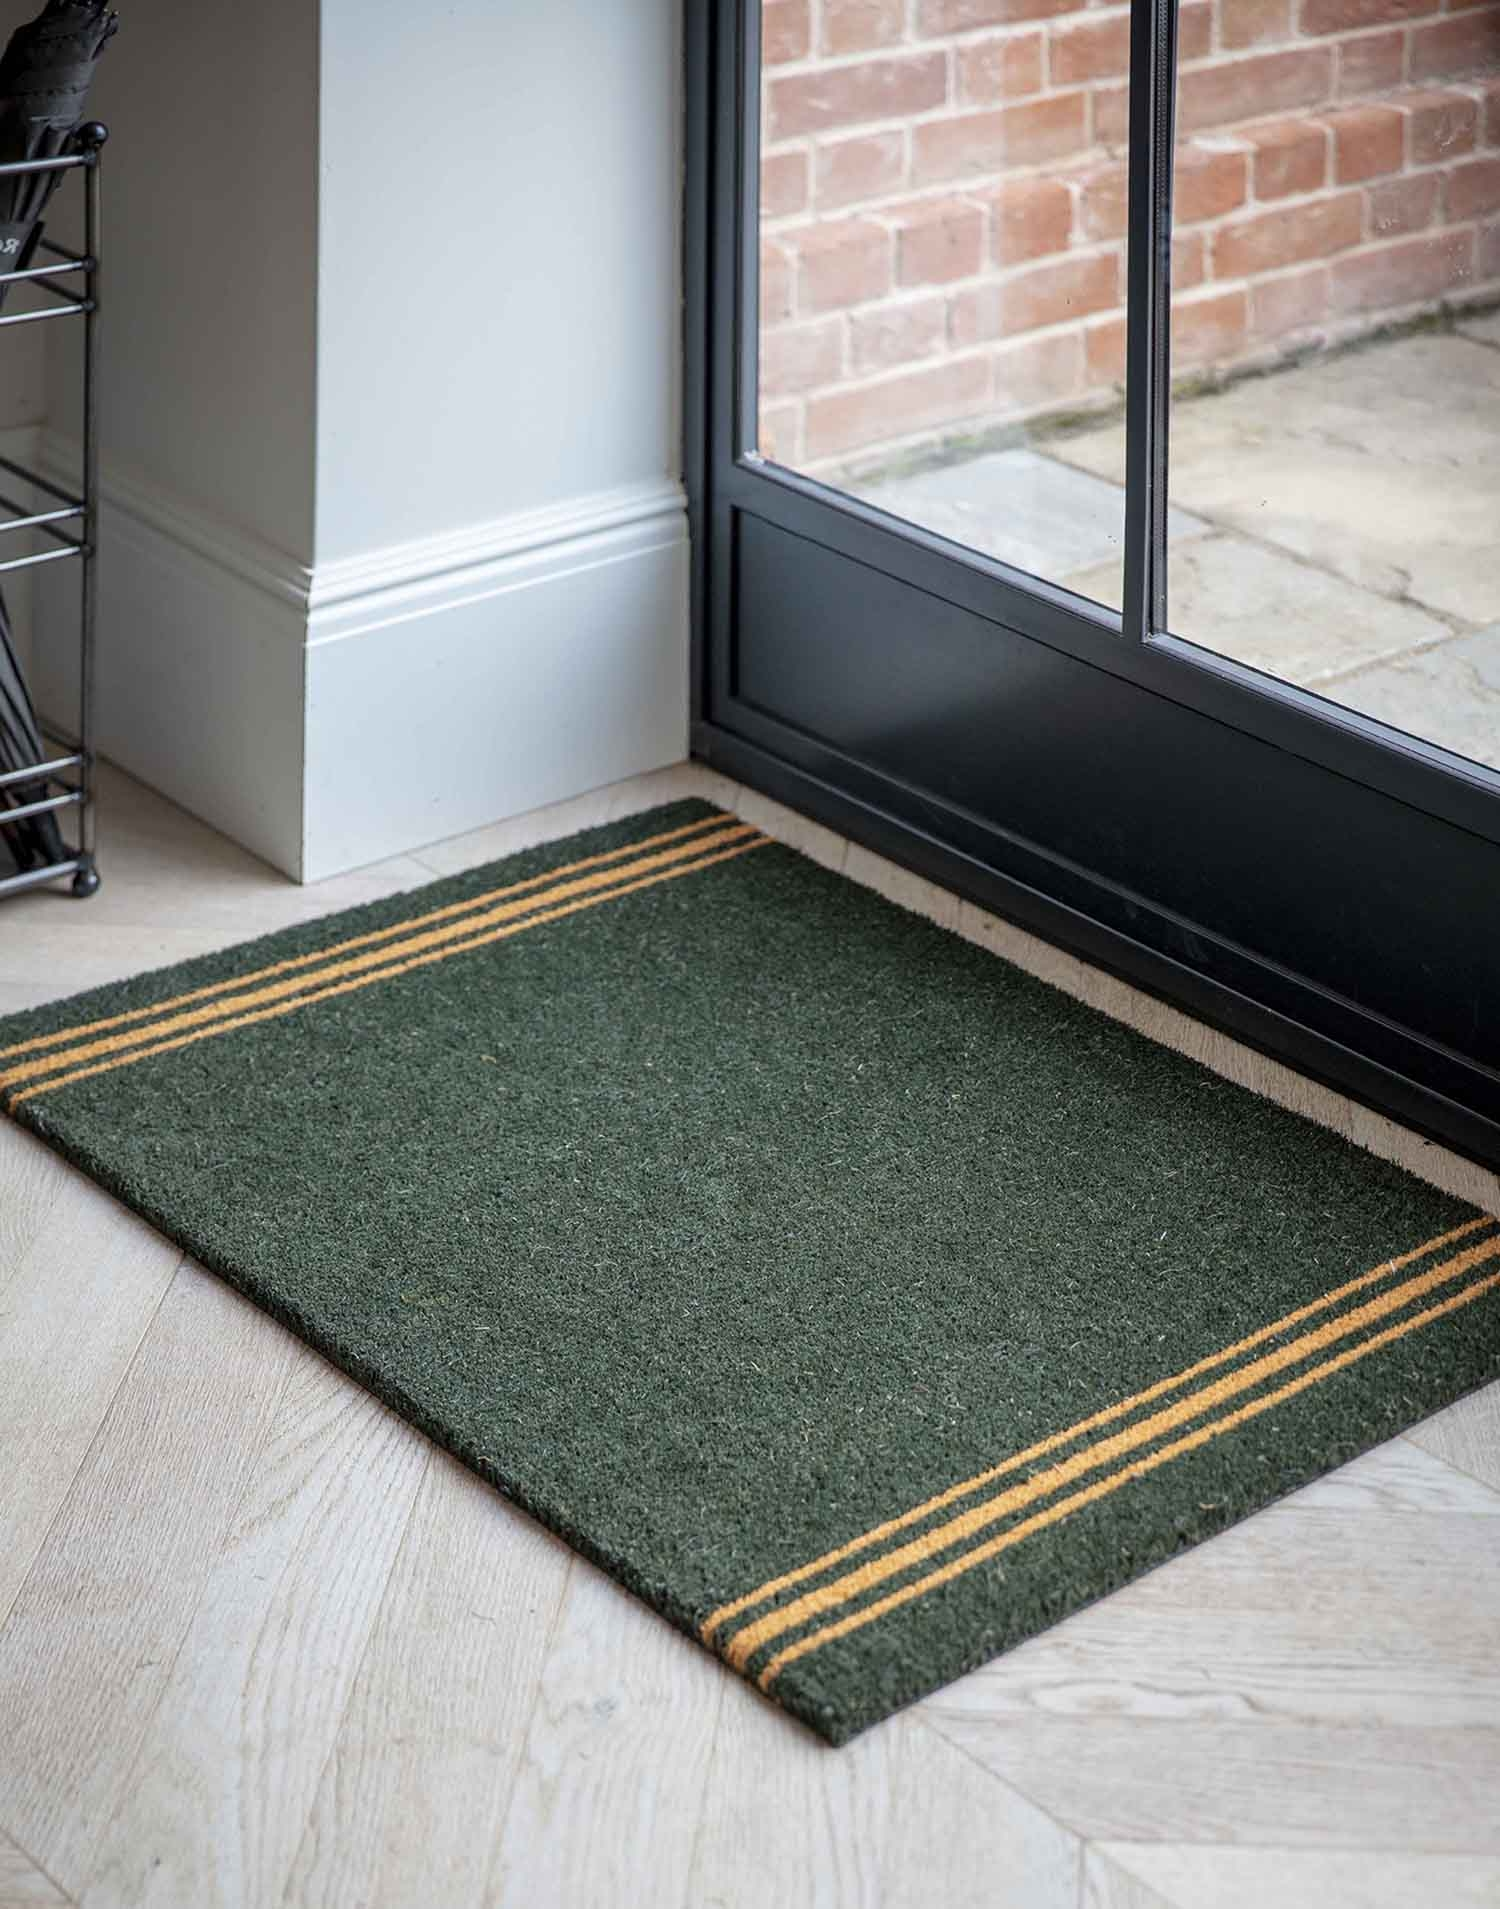 Image of Garden Trading Large Triple Stripe Doormat, Forest Green